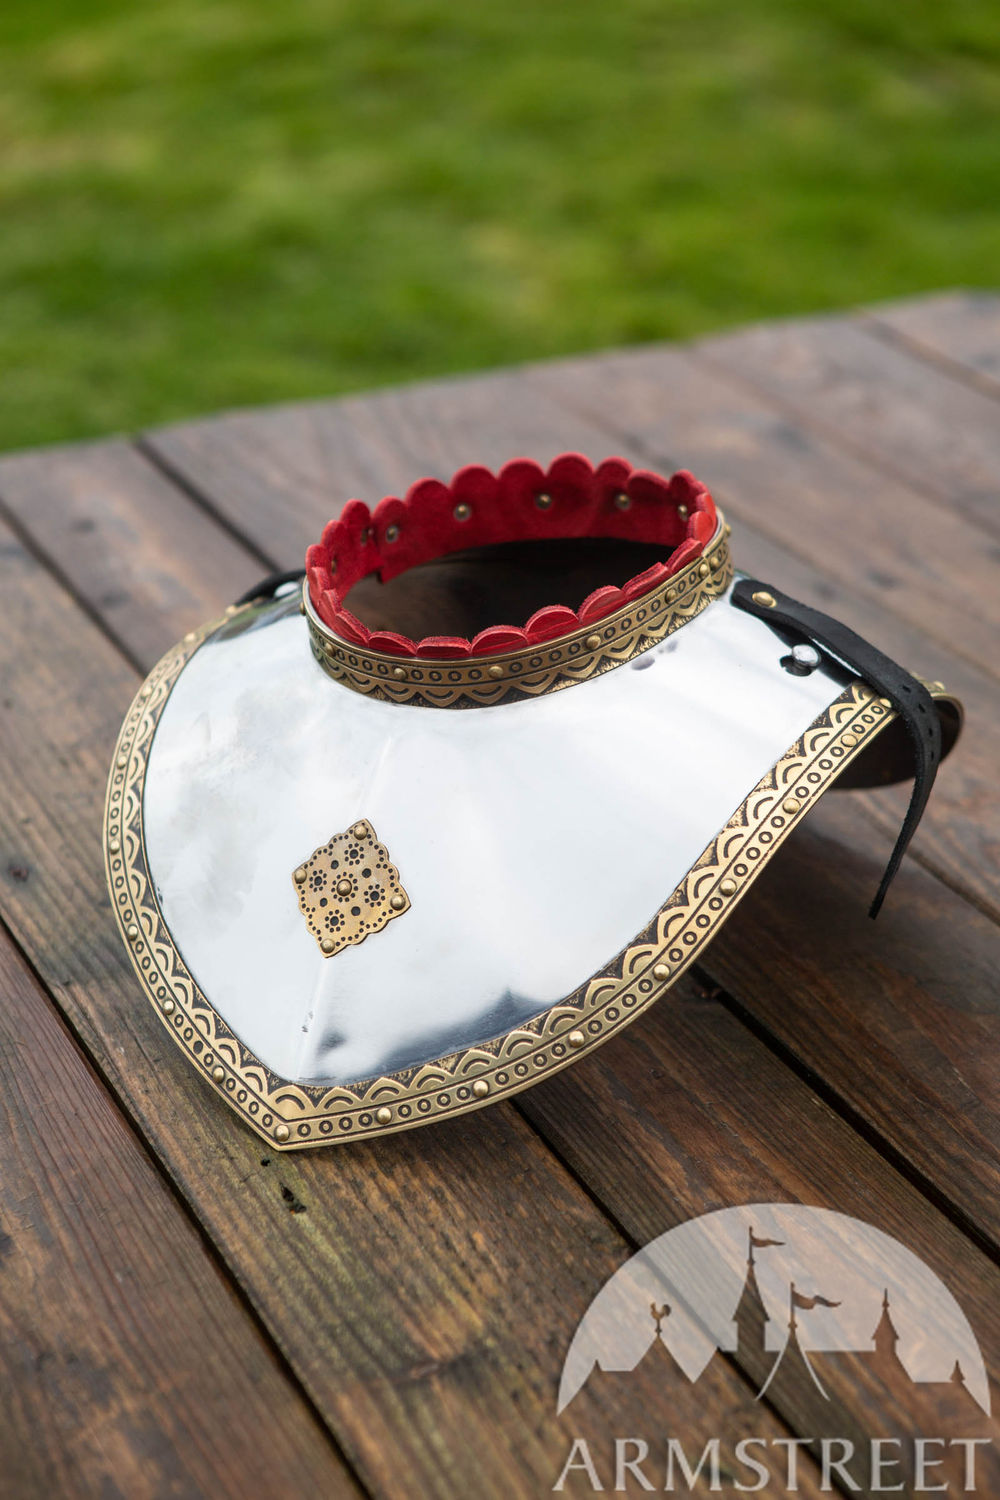 Polish Hussar gorget with brass accents